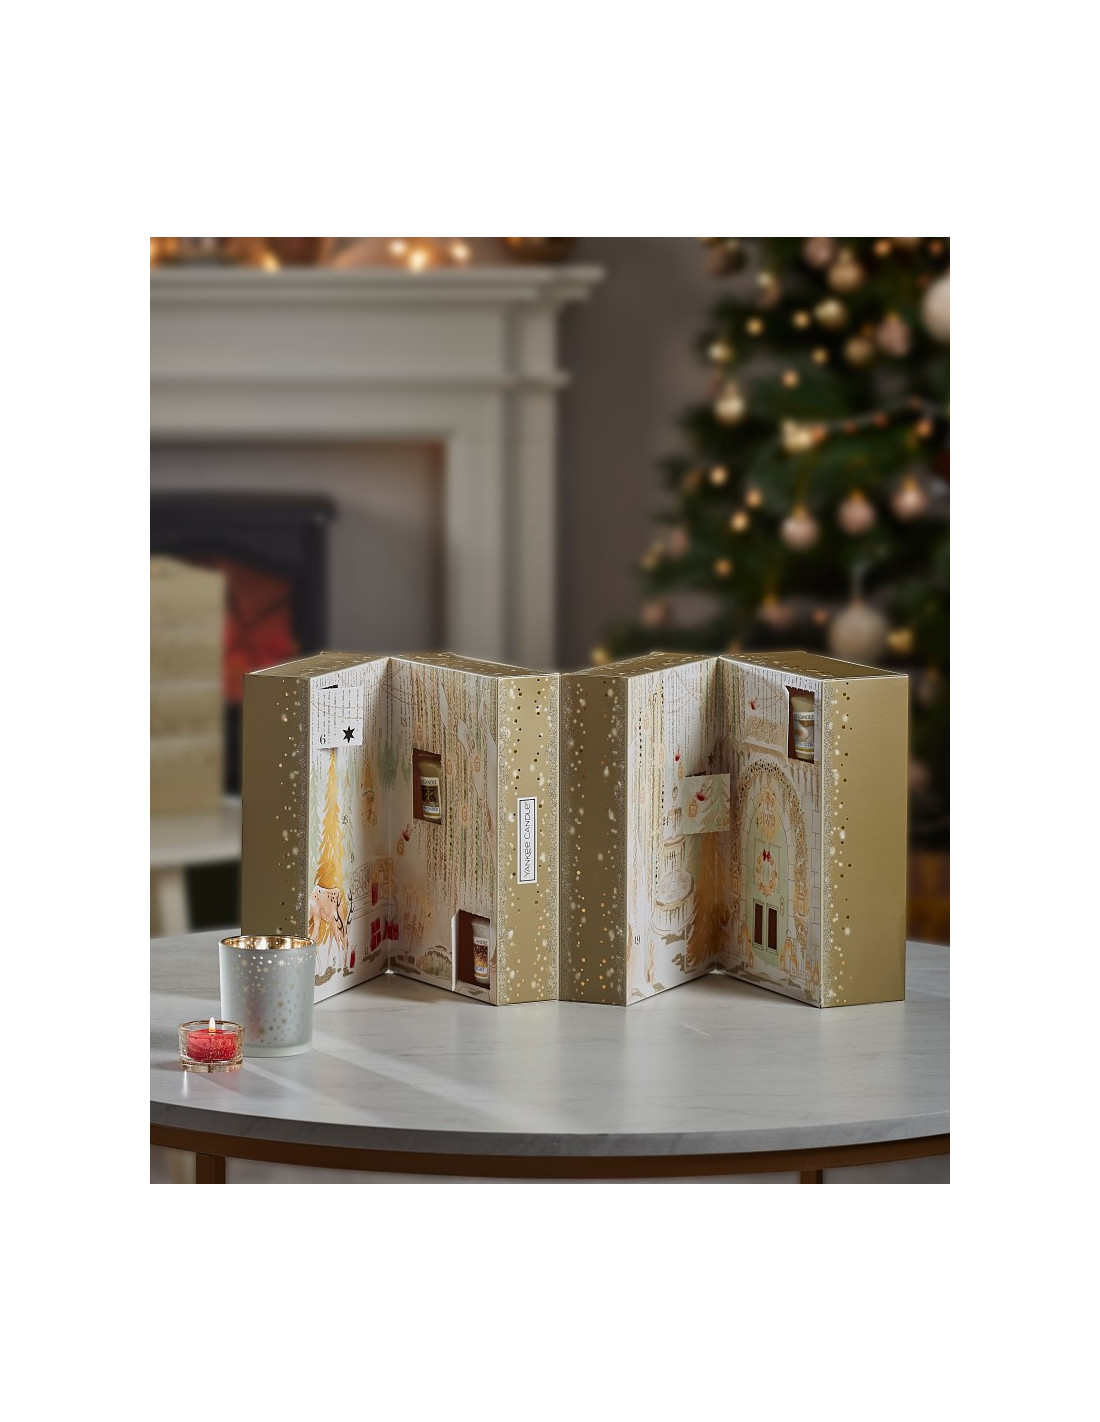 yankee candle noel calendrier collector de l 39 avent 2018. Black Bedroom Furniture Sets. Home Design Ideas